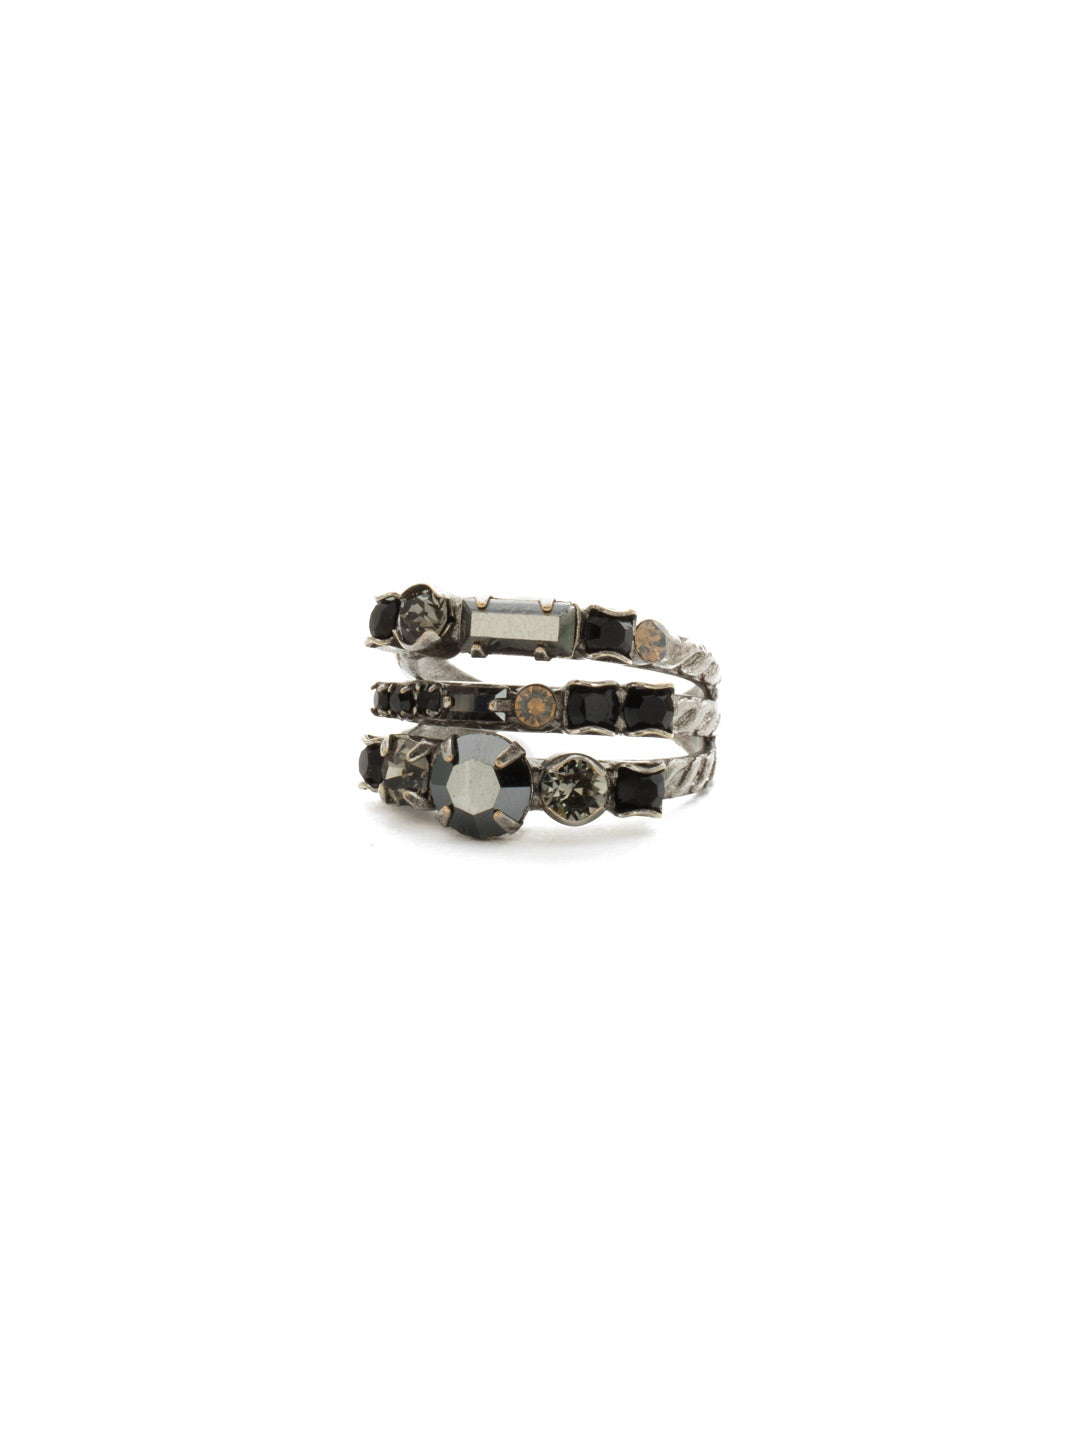 Triple Threat Stacked Ring - RDK23ASBON